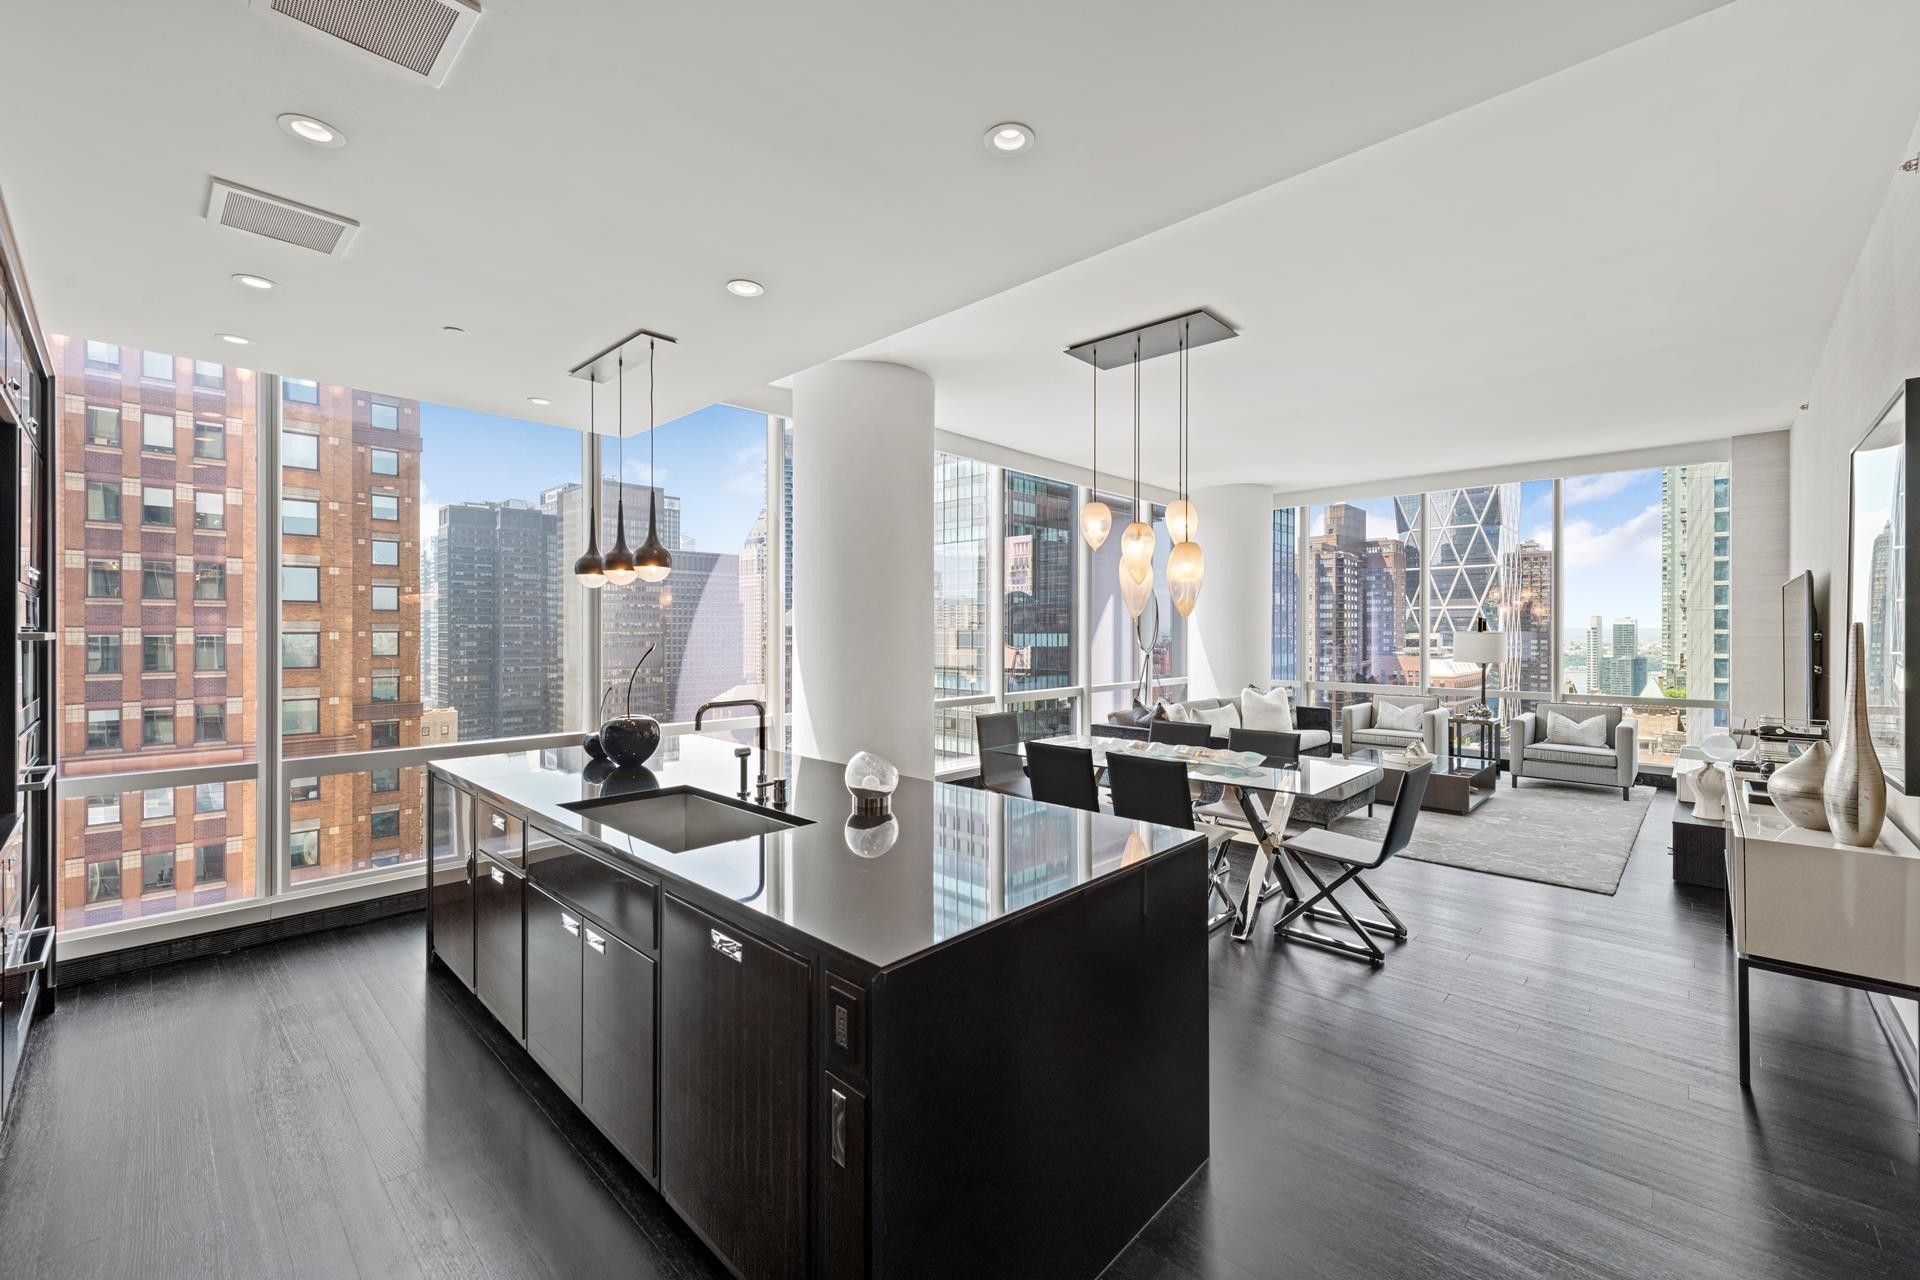 Property à One57, 157 West 57th St, 37C Midtown West, New York, NY 10019